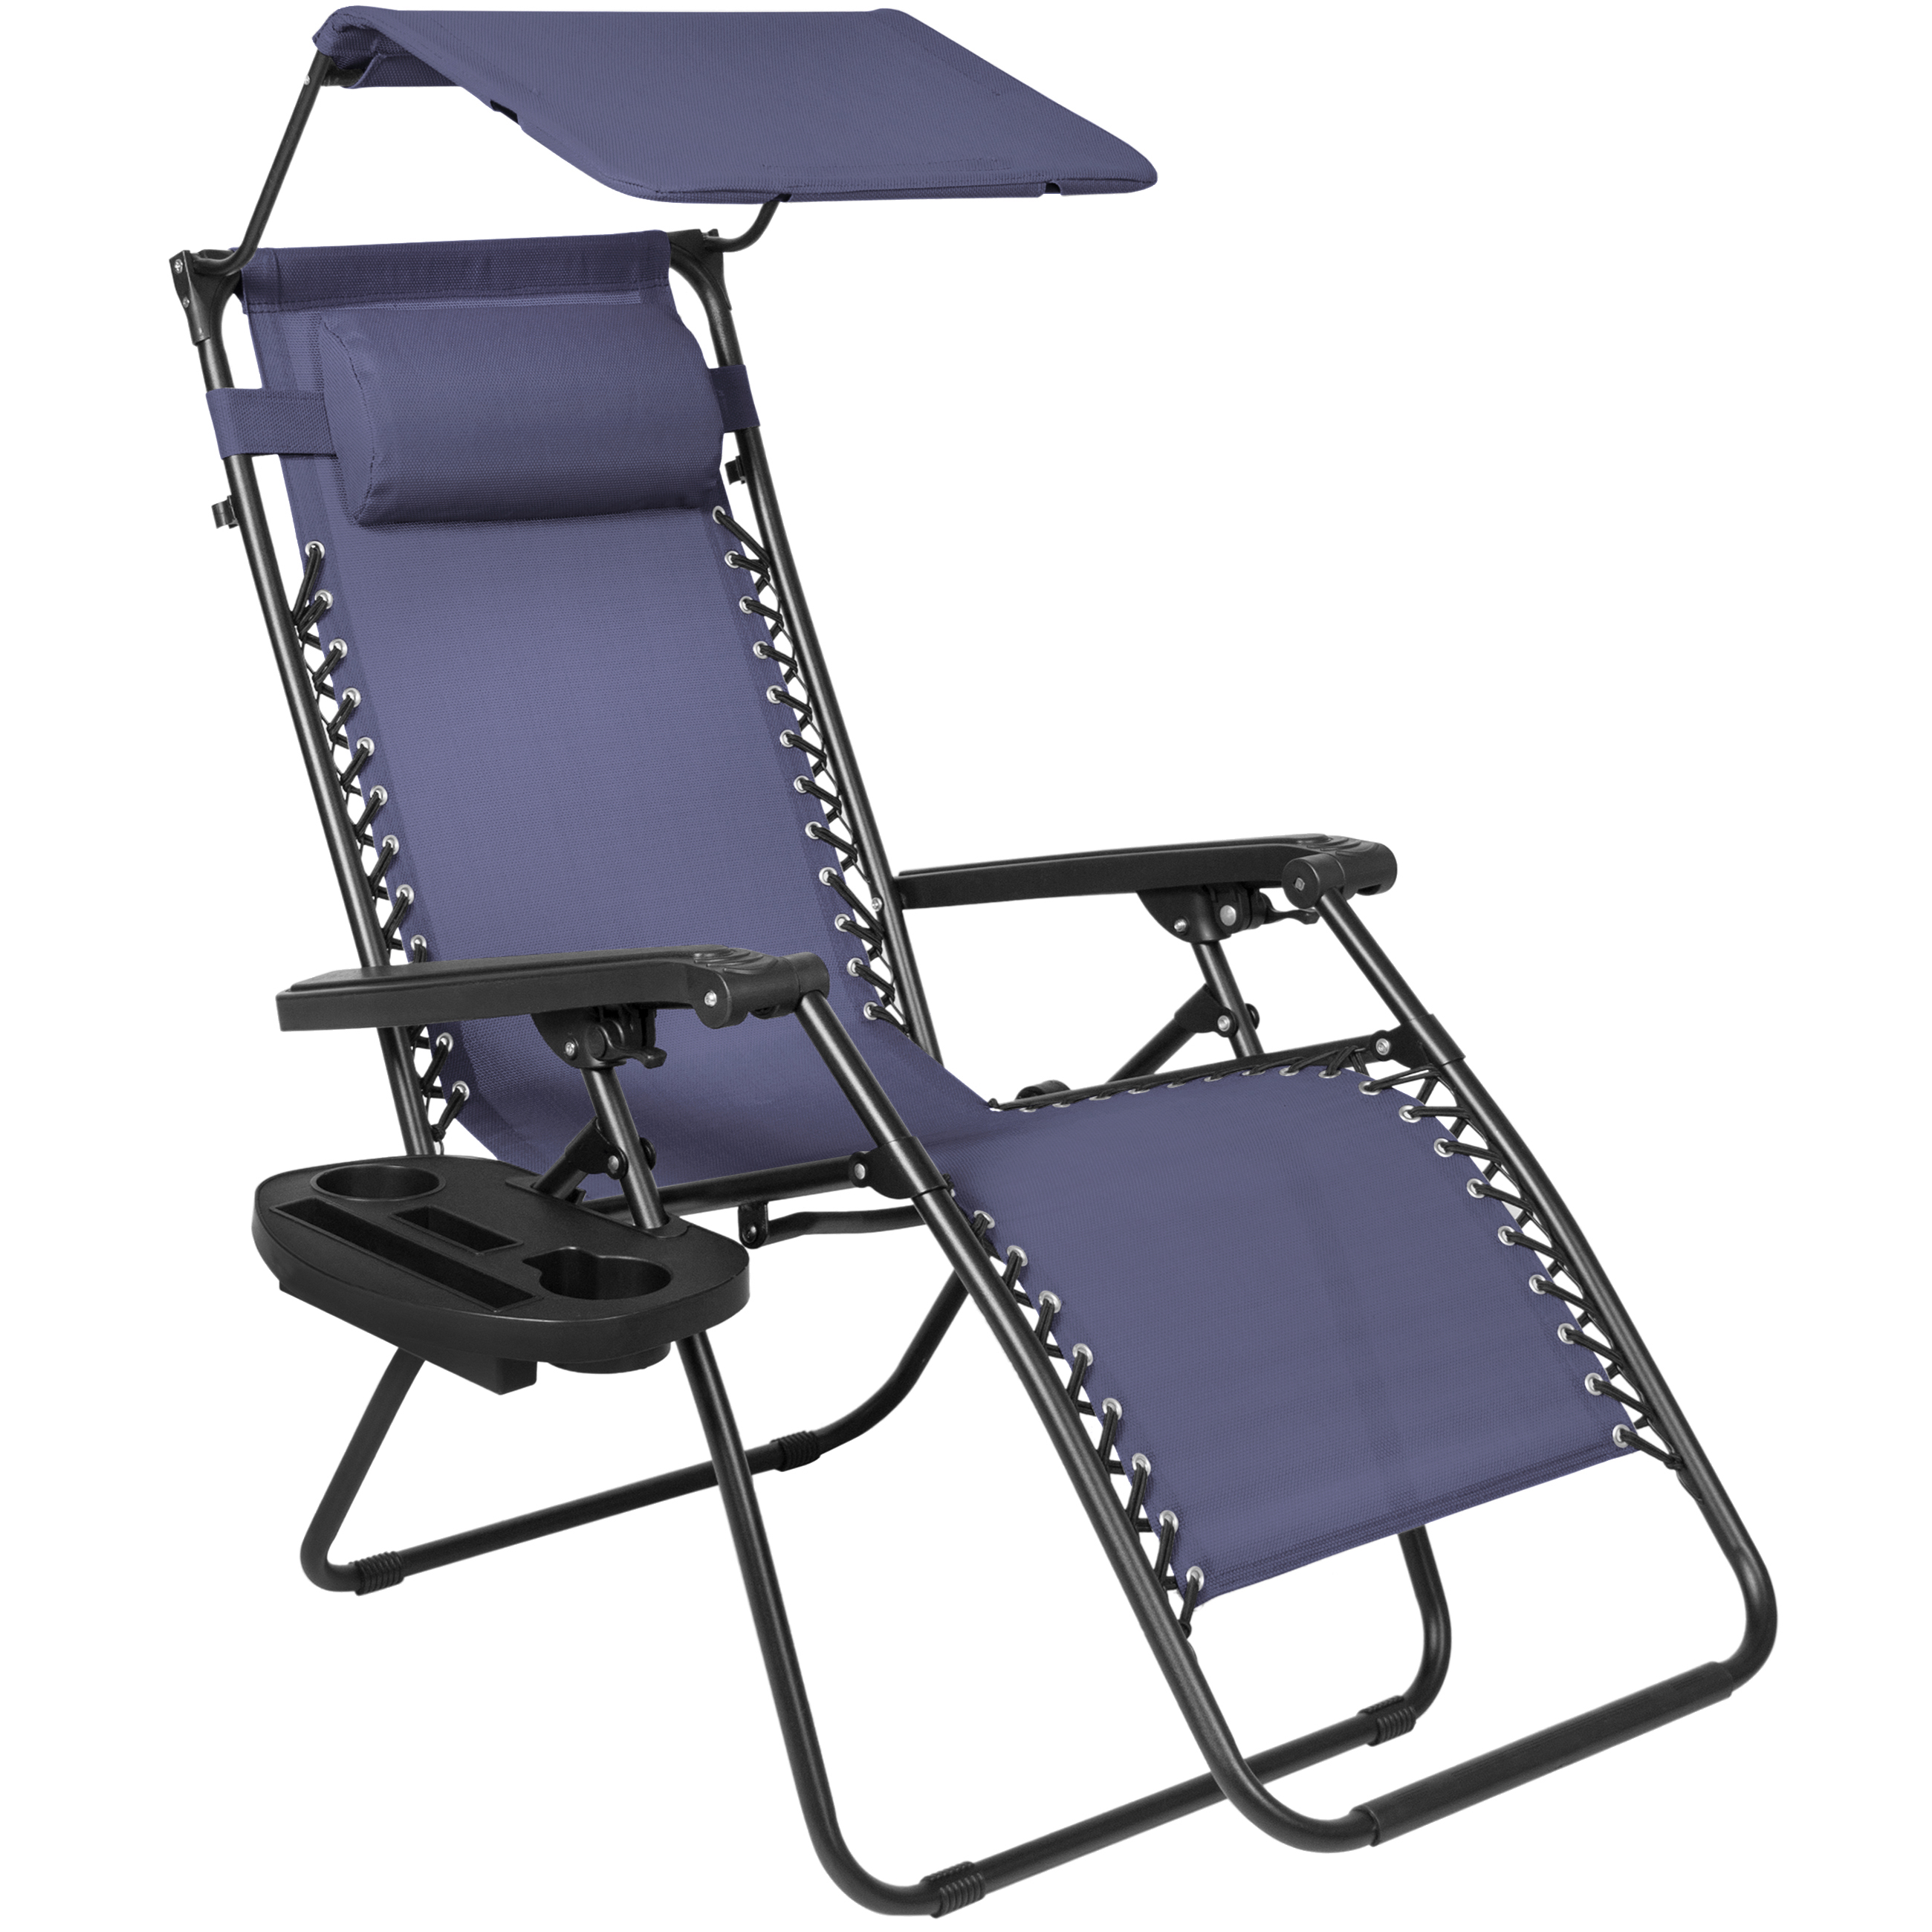 Genial BCP Folding Zero Gravity Lounge Chair W/ Canopy U0026 Magazine Cup Holder    Walmart.com